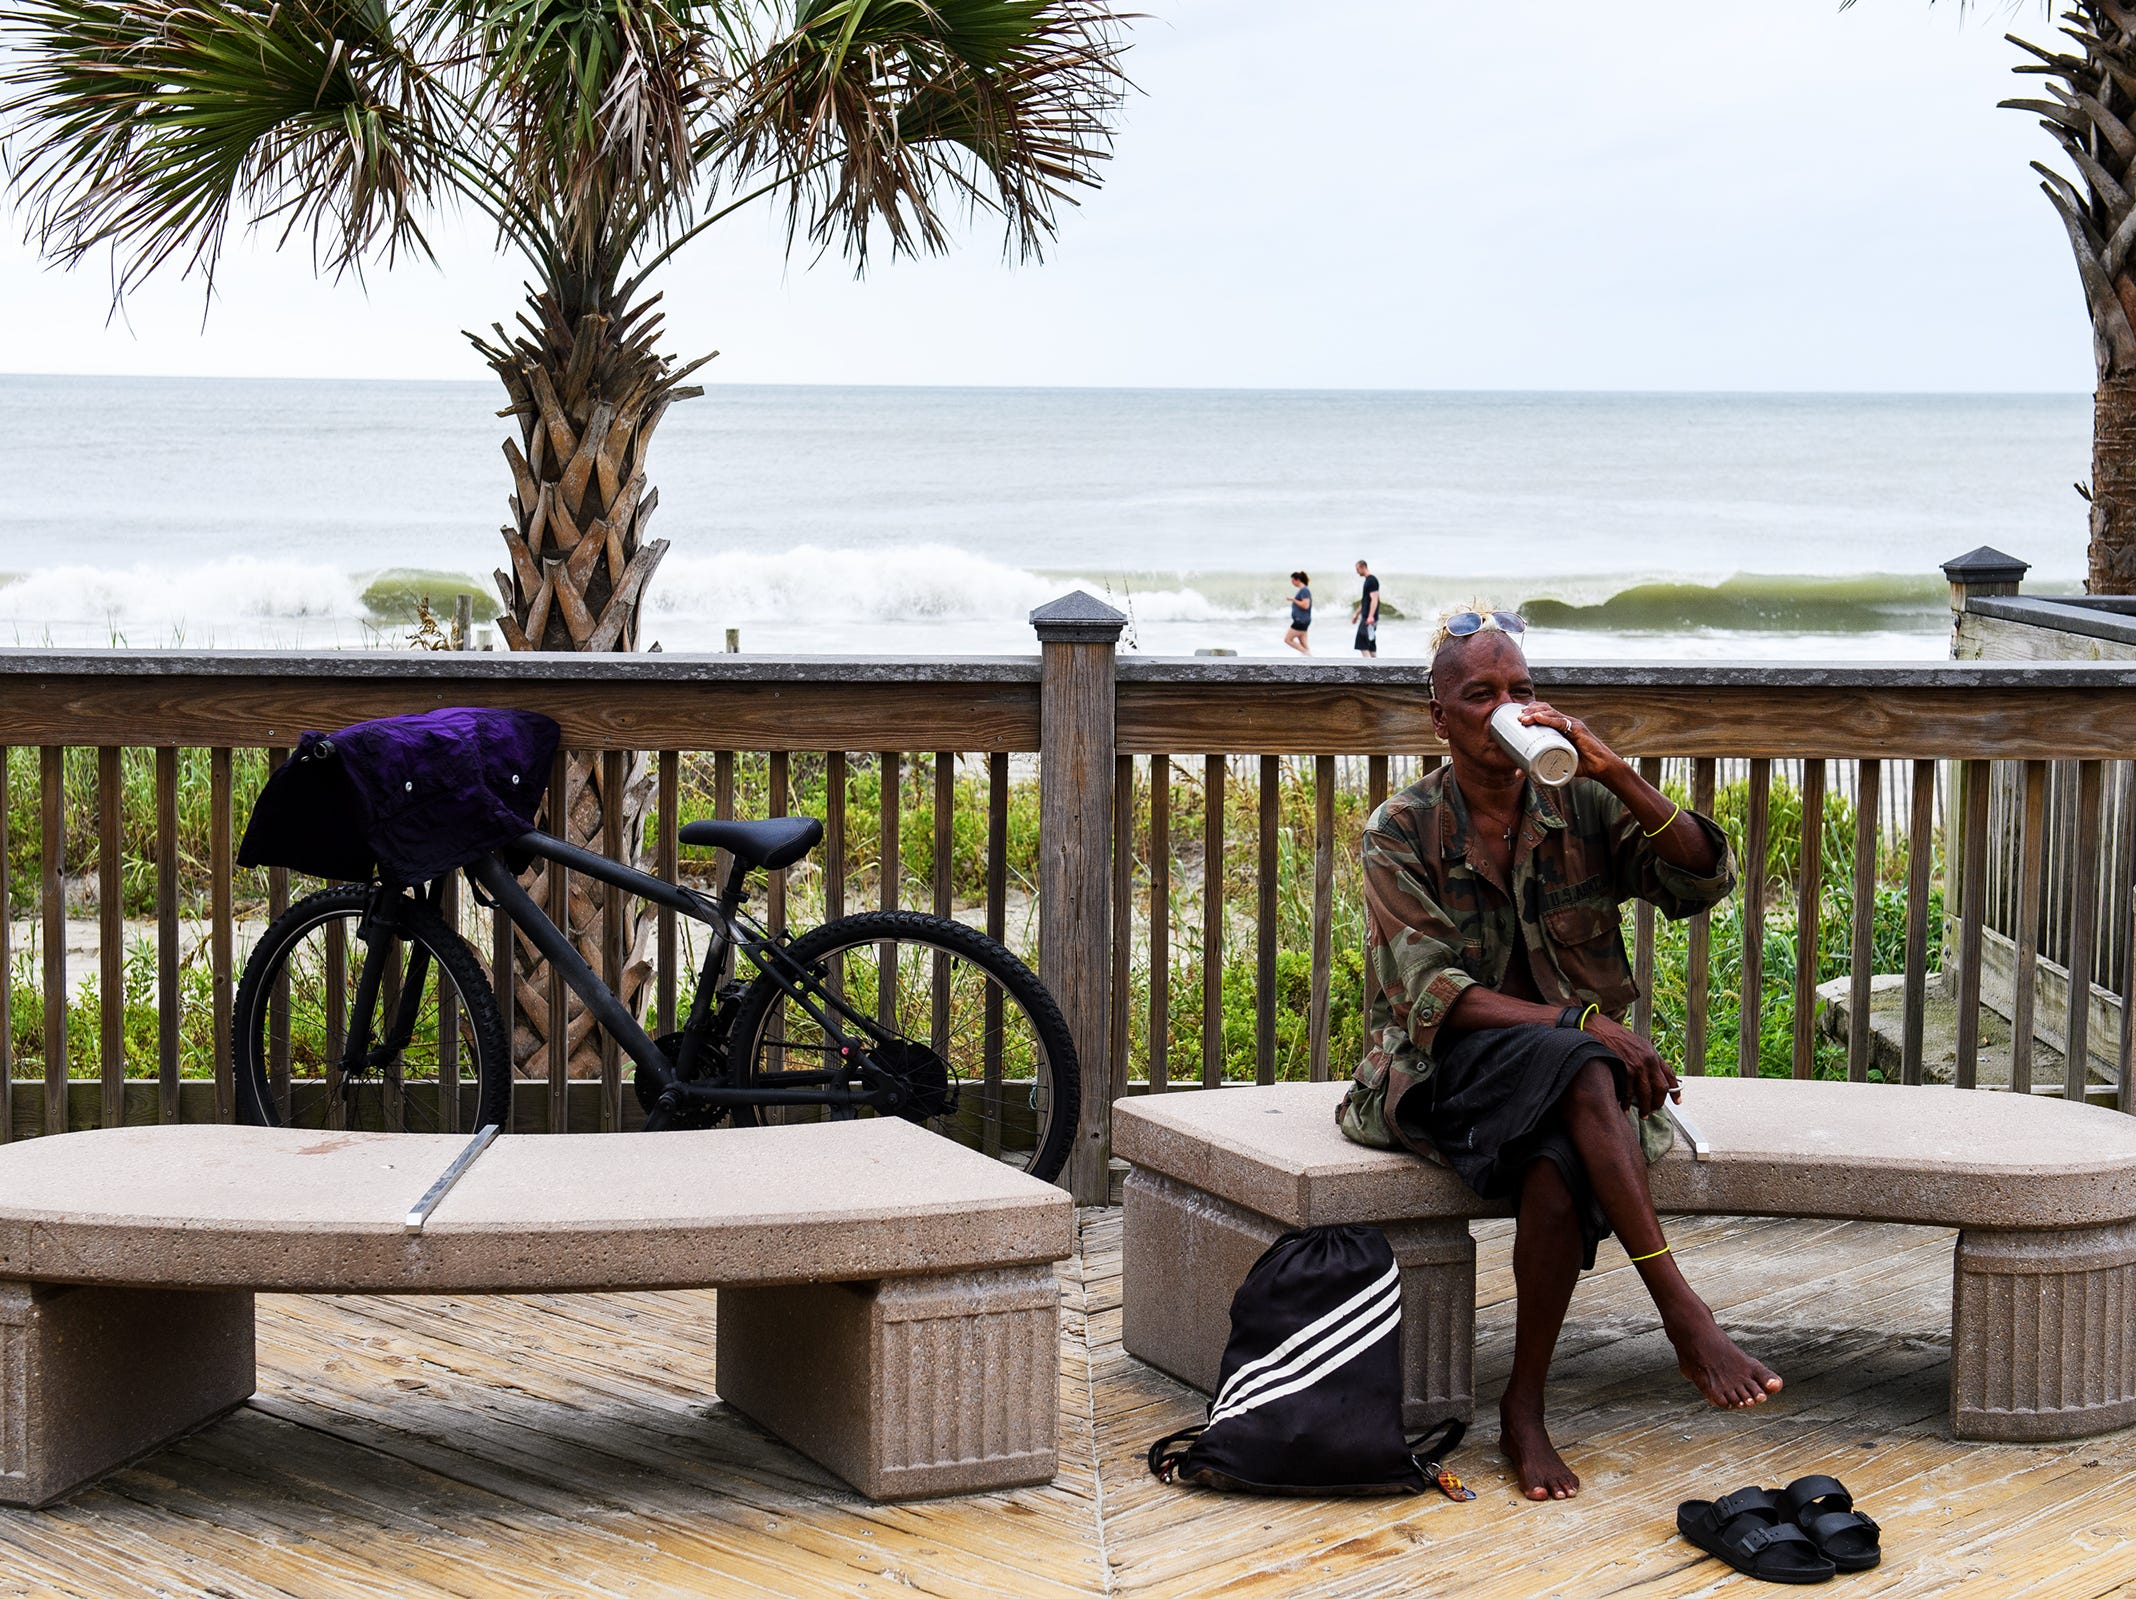 "Shane ""Rooster"" Bacchus, a homeless man living in Myrtle Beach, takes a drink from his water bottle at the Myrtle Beach Boardwalk and Promenade on Thursday, Sept. 13, 2018. Bacchus said he will be sleeping in a truck during Hurricane Florence when it hits this weekend."